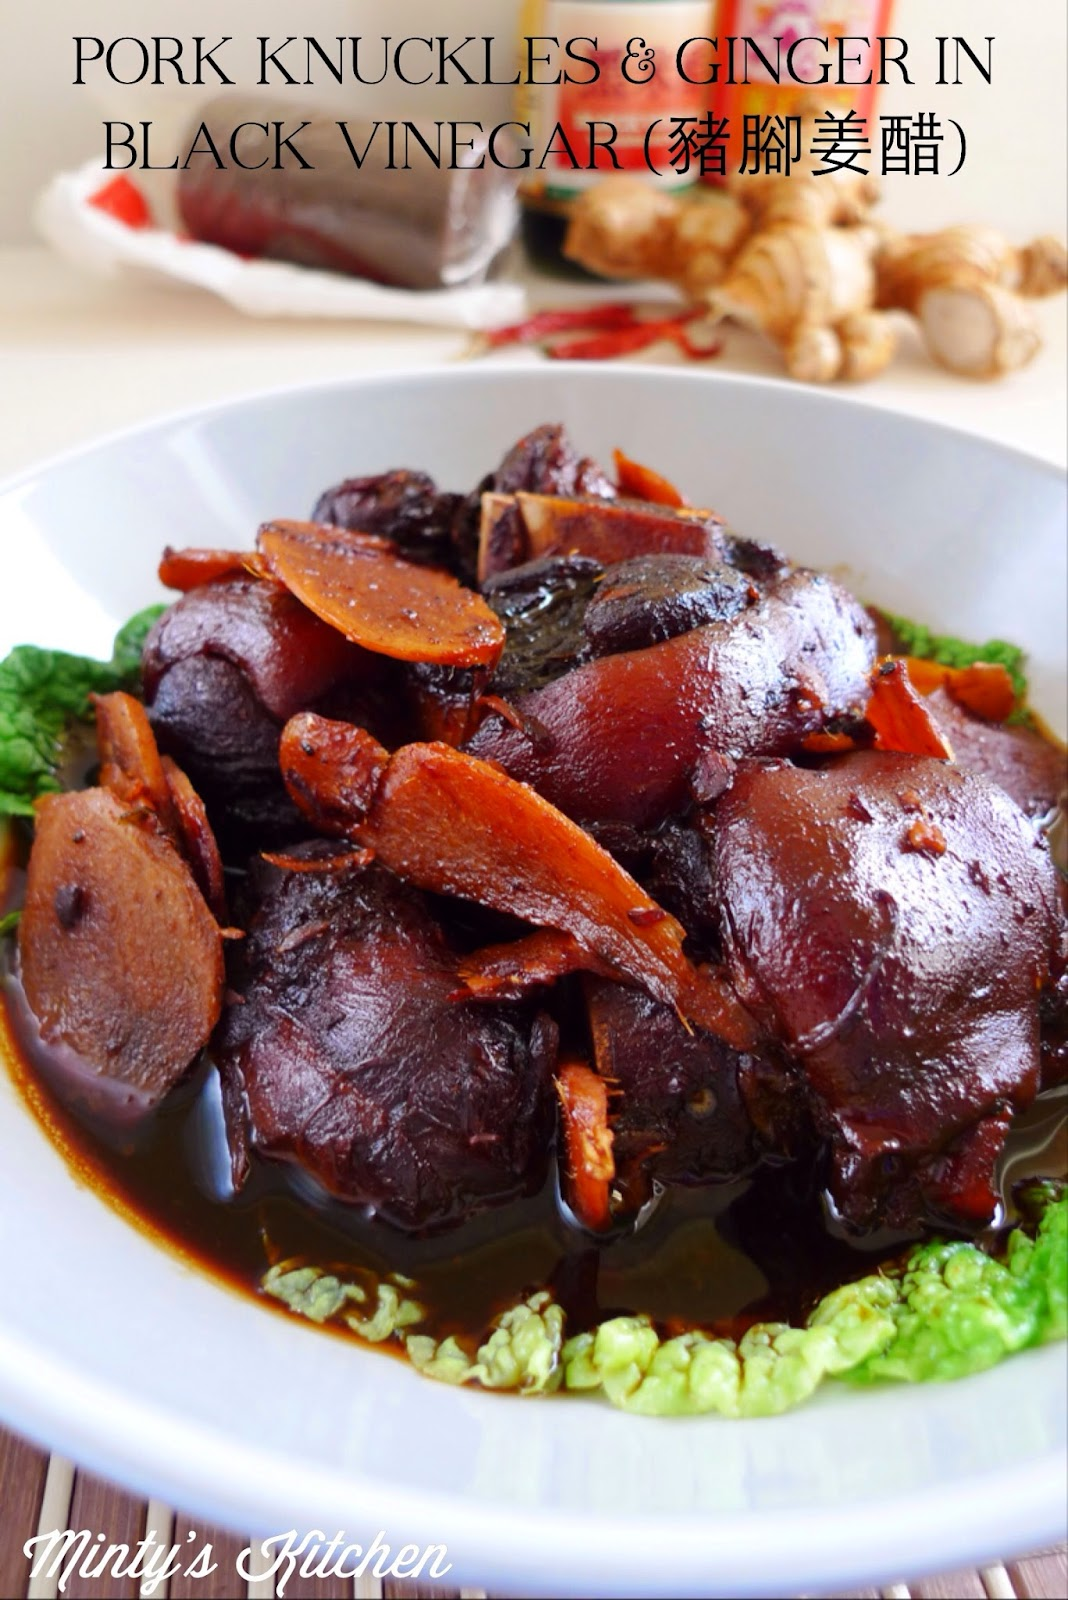 Pork Trotters & Ginger in Black Vinegar (豬腳姜醋)